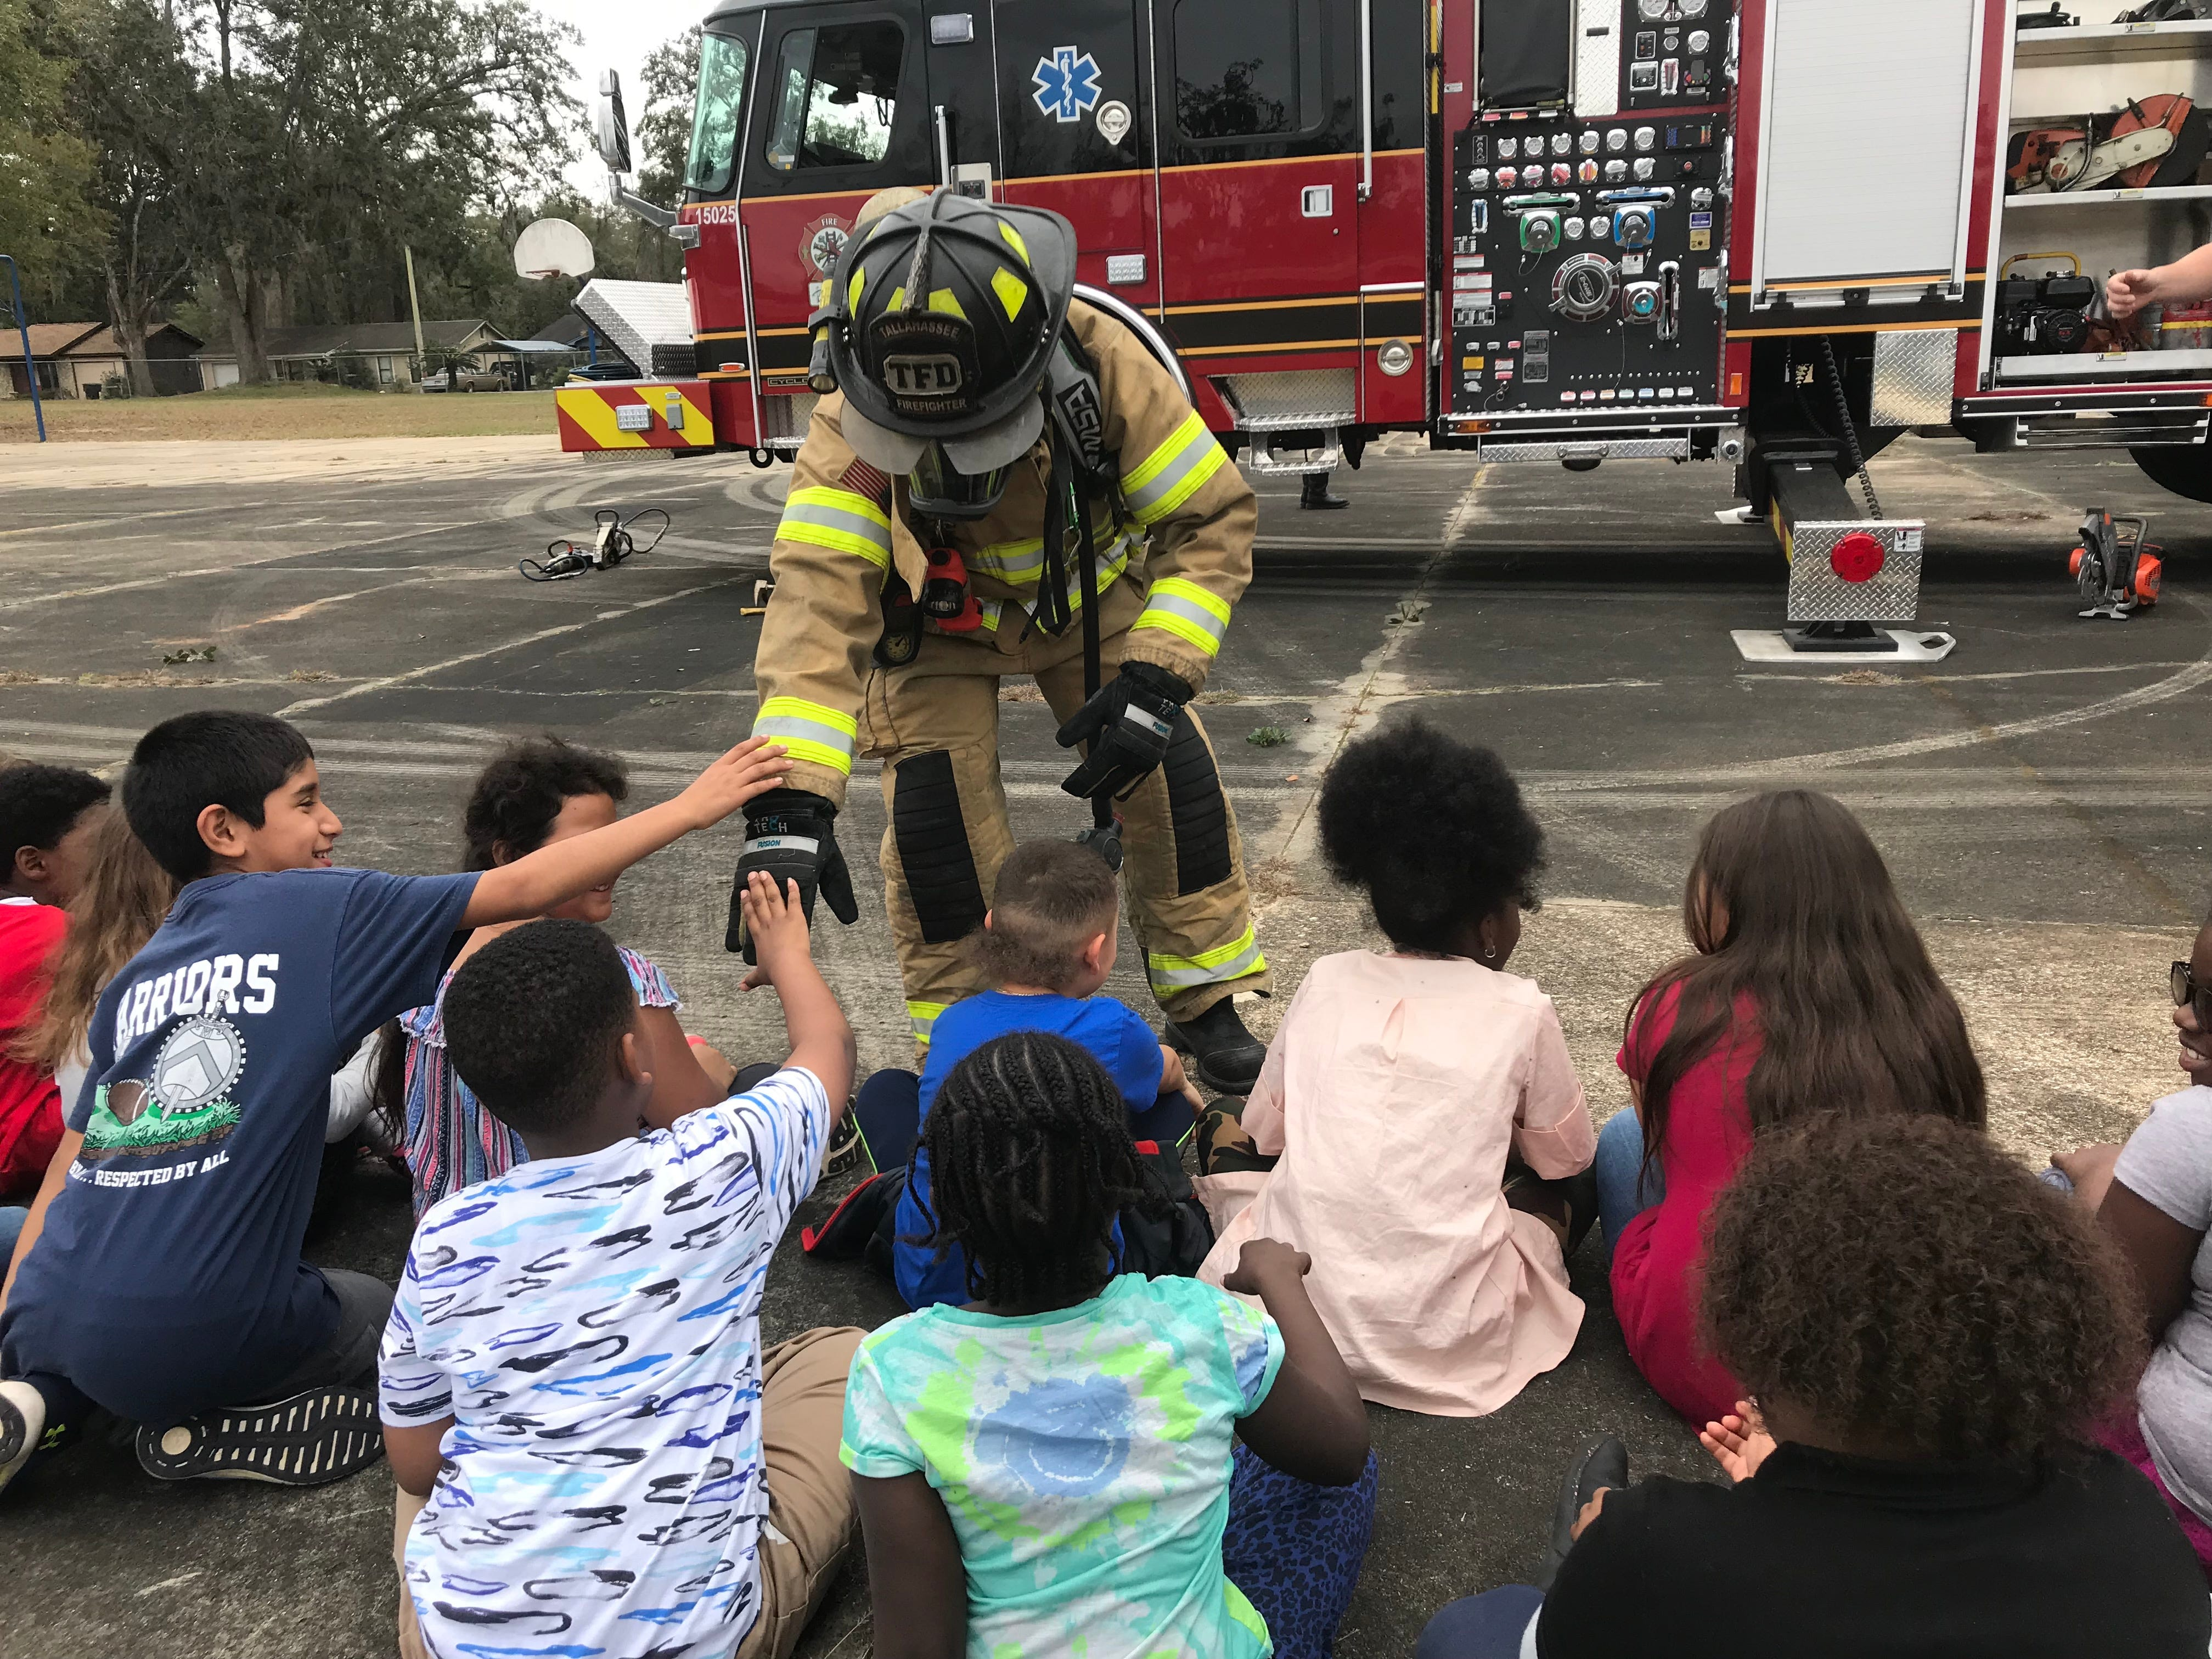 Engineer Jeff Brady lets Sabal Palm Elementary second graders feel his gloves while visiting the school Friday.